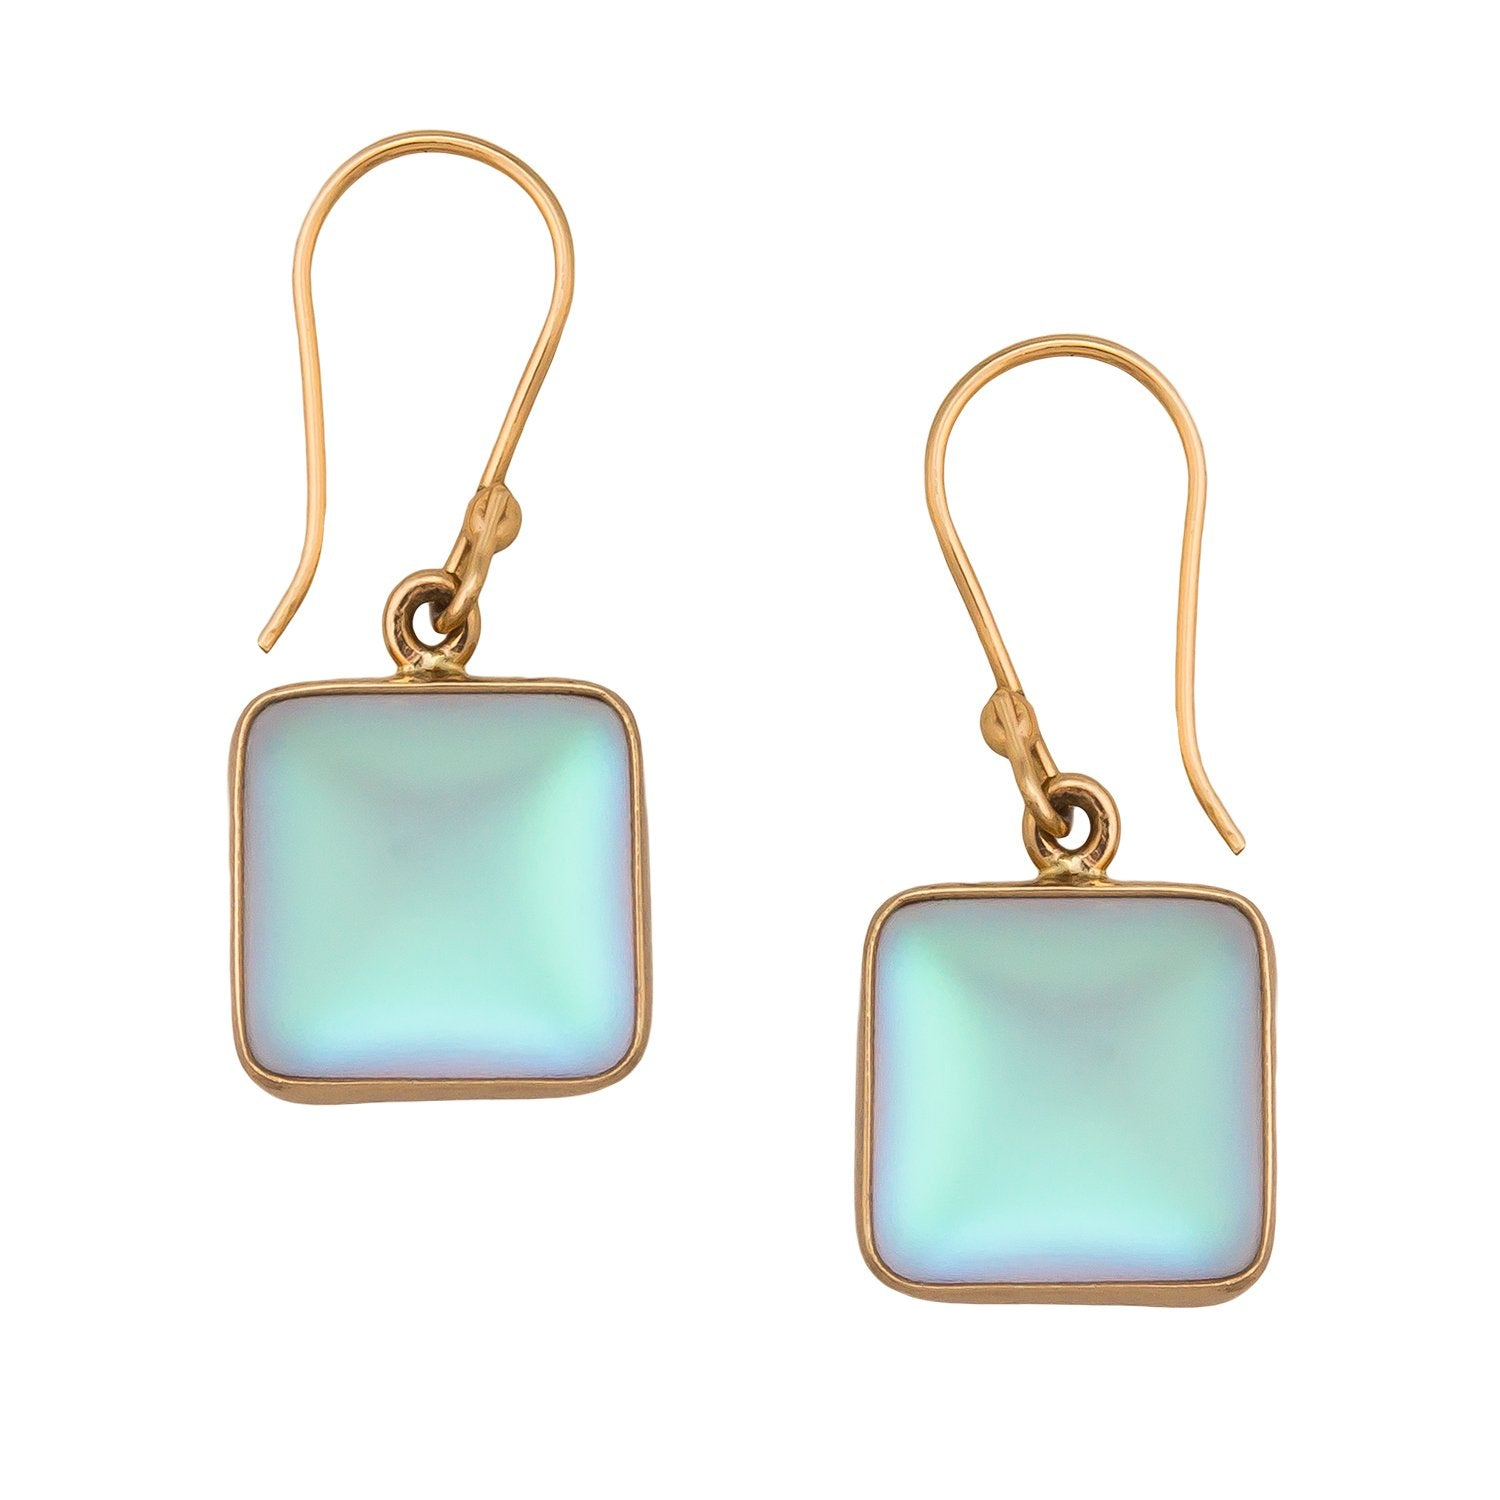 Alchemia Square Luminite Drop Earrings